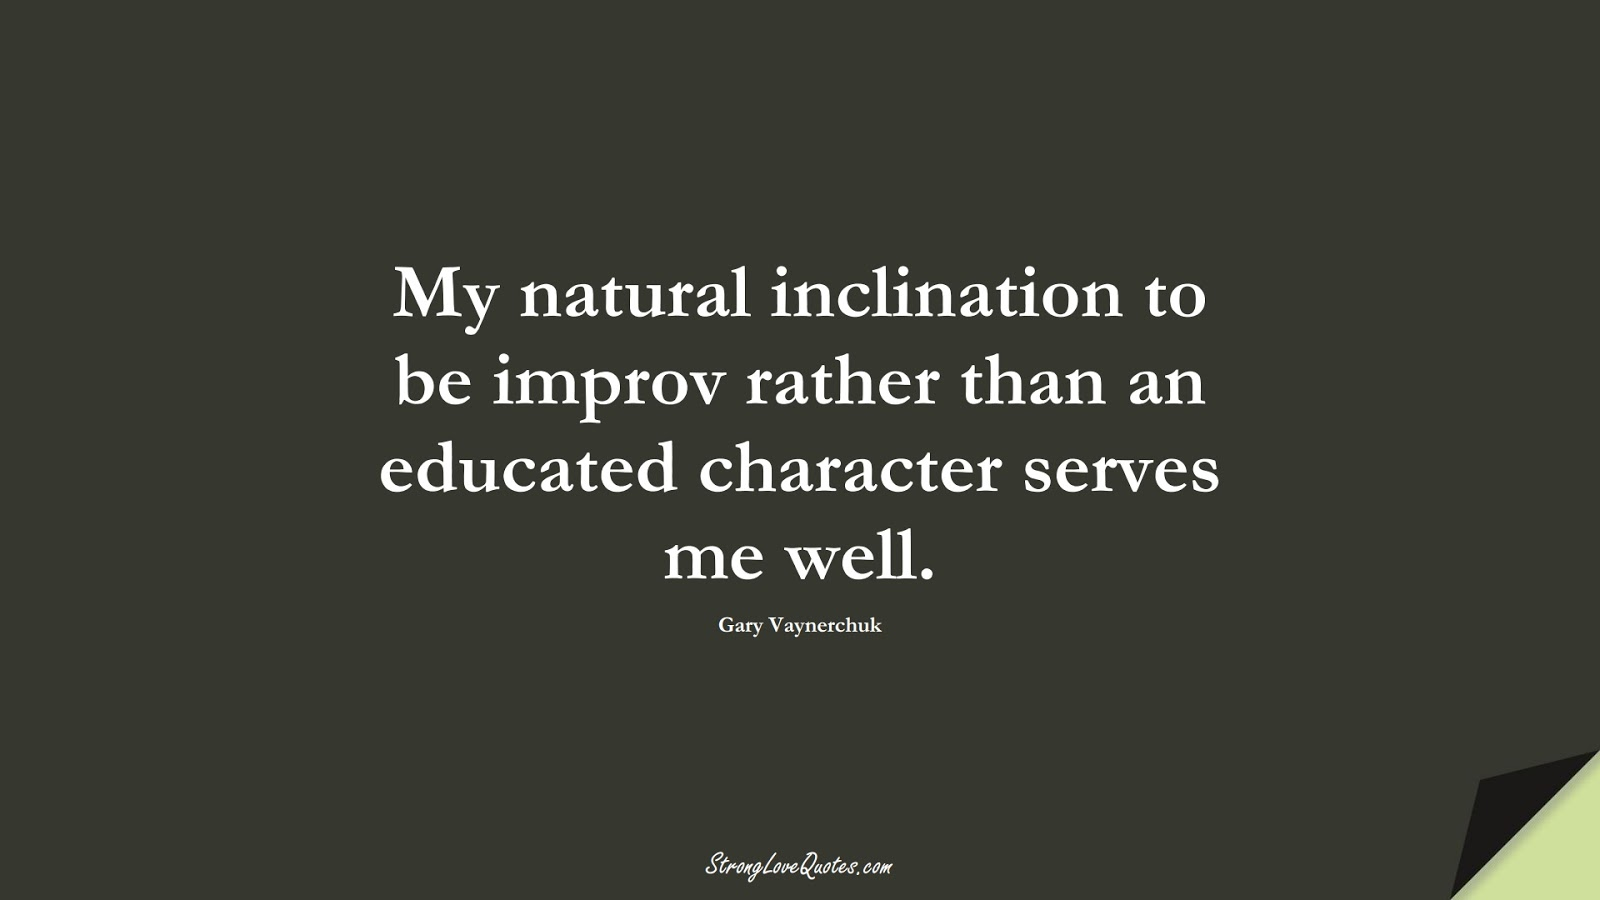 My natural inclination to be improv rather than an educated character serves me well. (Gary Vaynerchuk);  #EducationQuotes